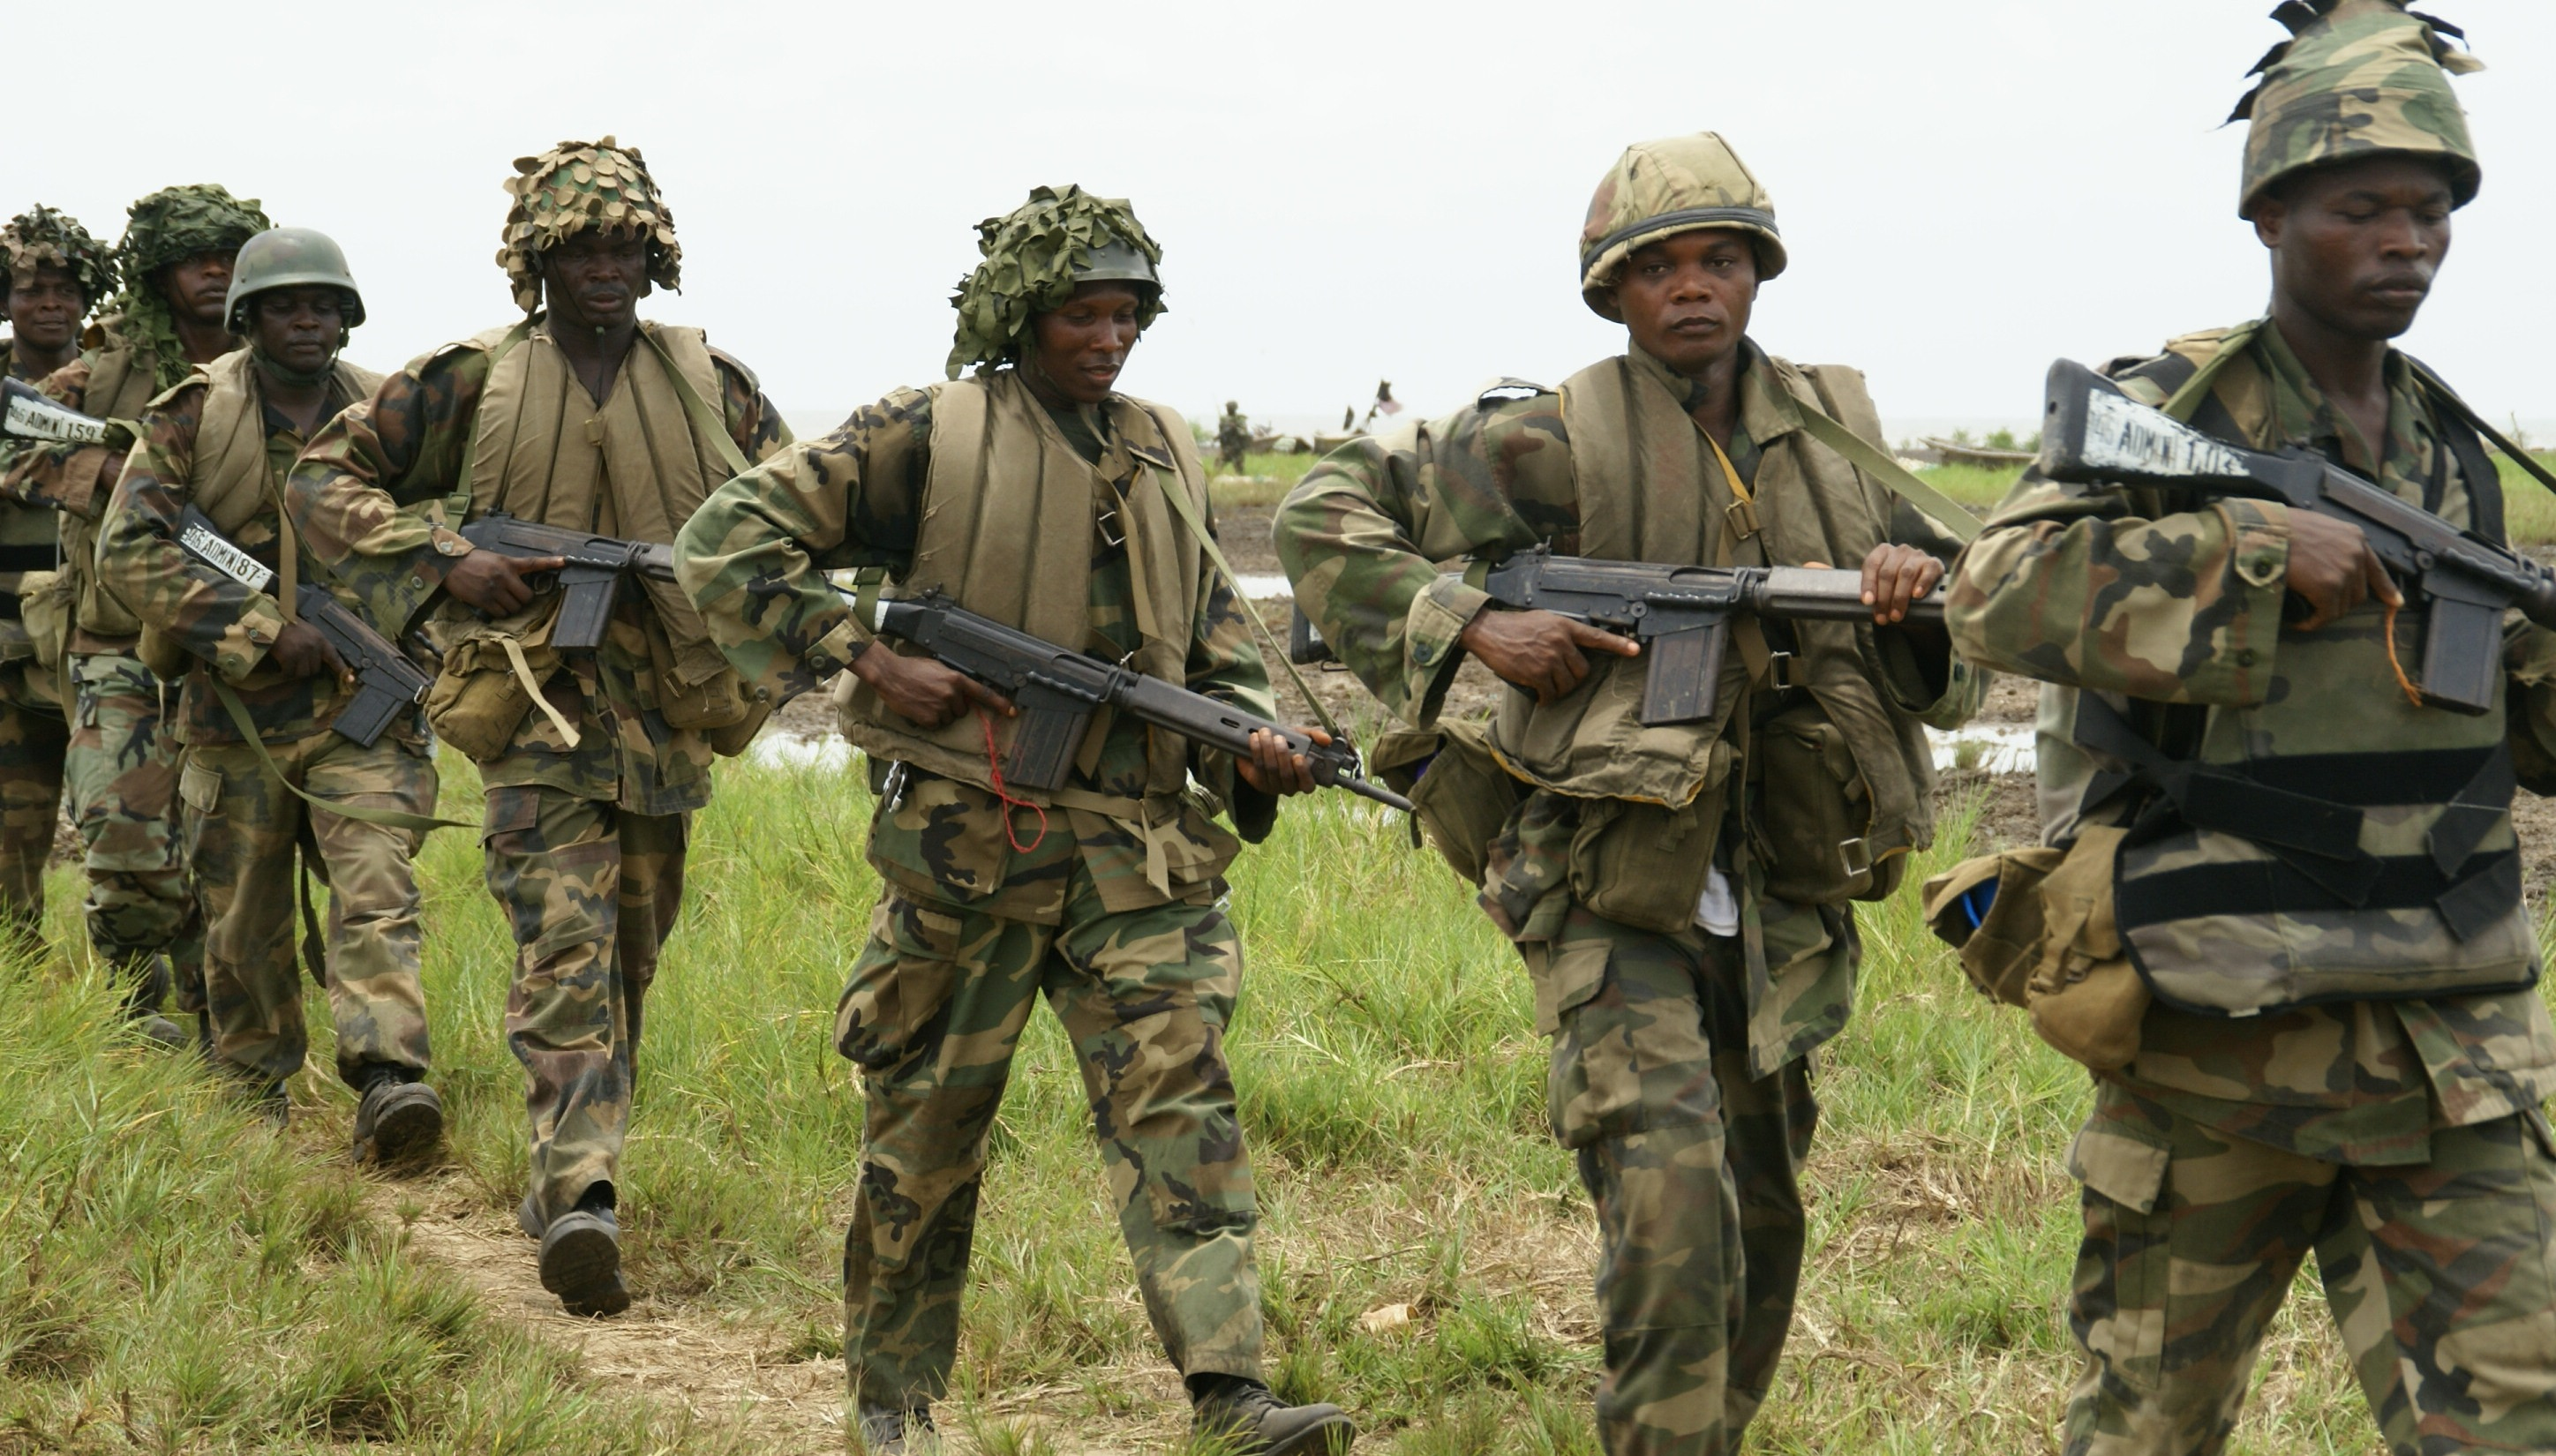 Army Seeks More Funding To Fight Boko Haram